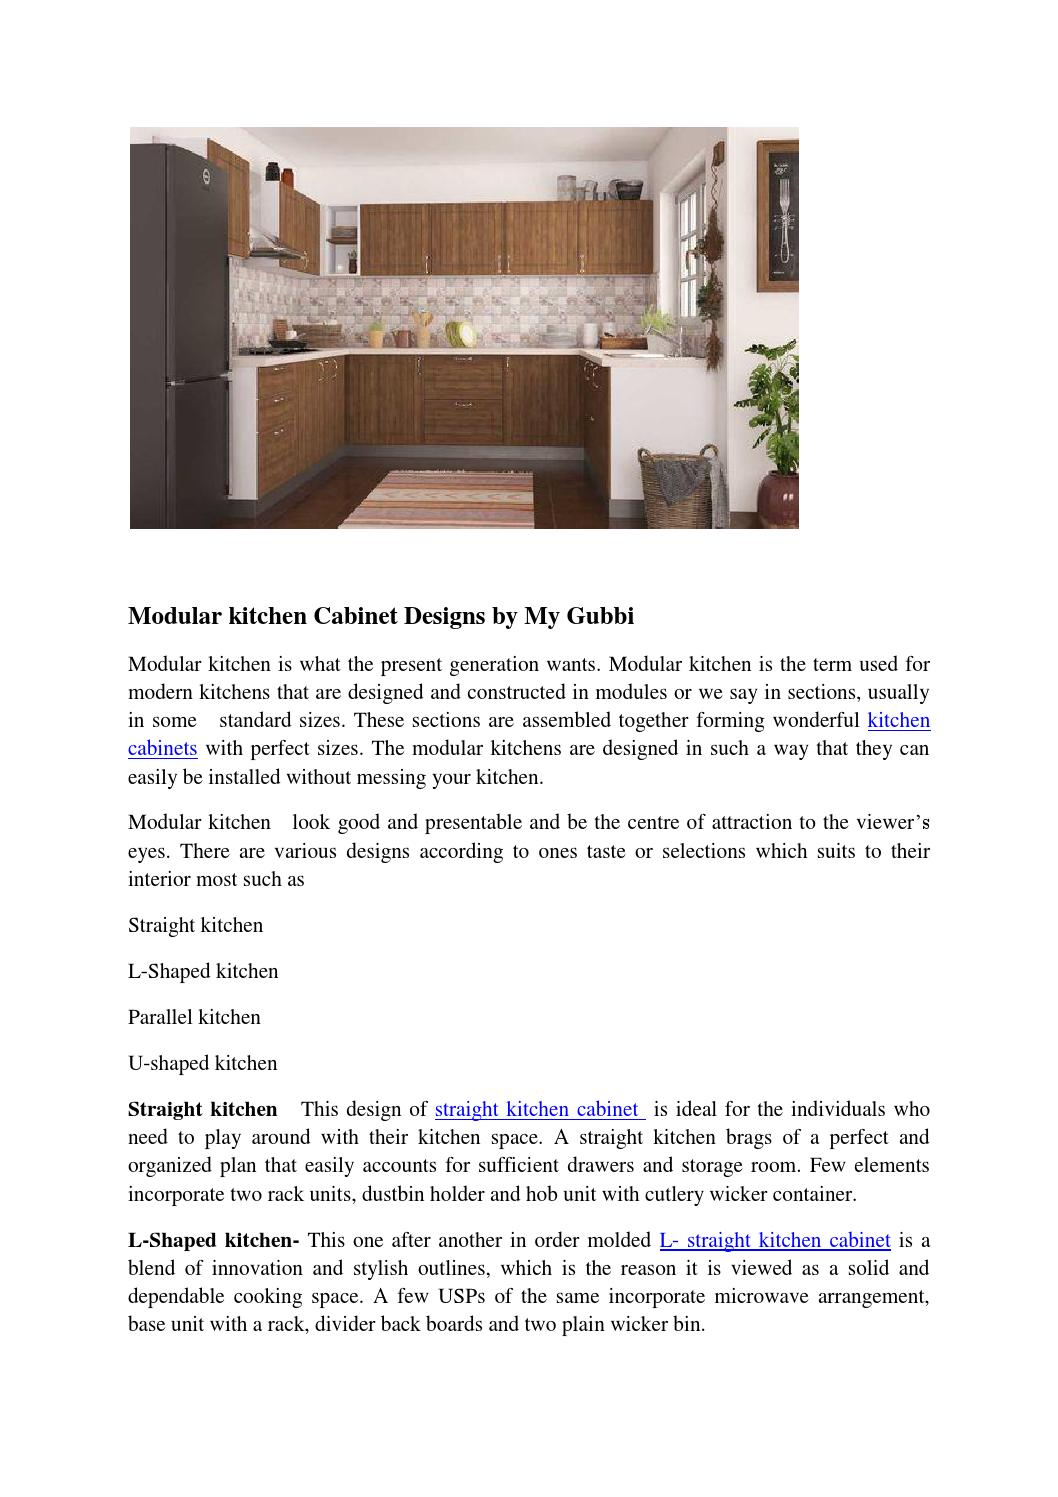 Modular Kitchen Cabinet Designs By My Gubbi By Mygubbi Issuu